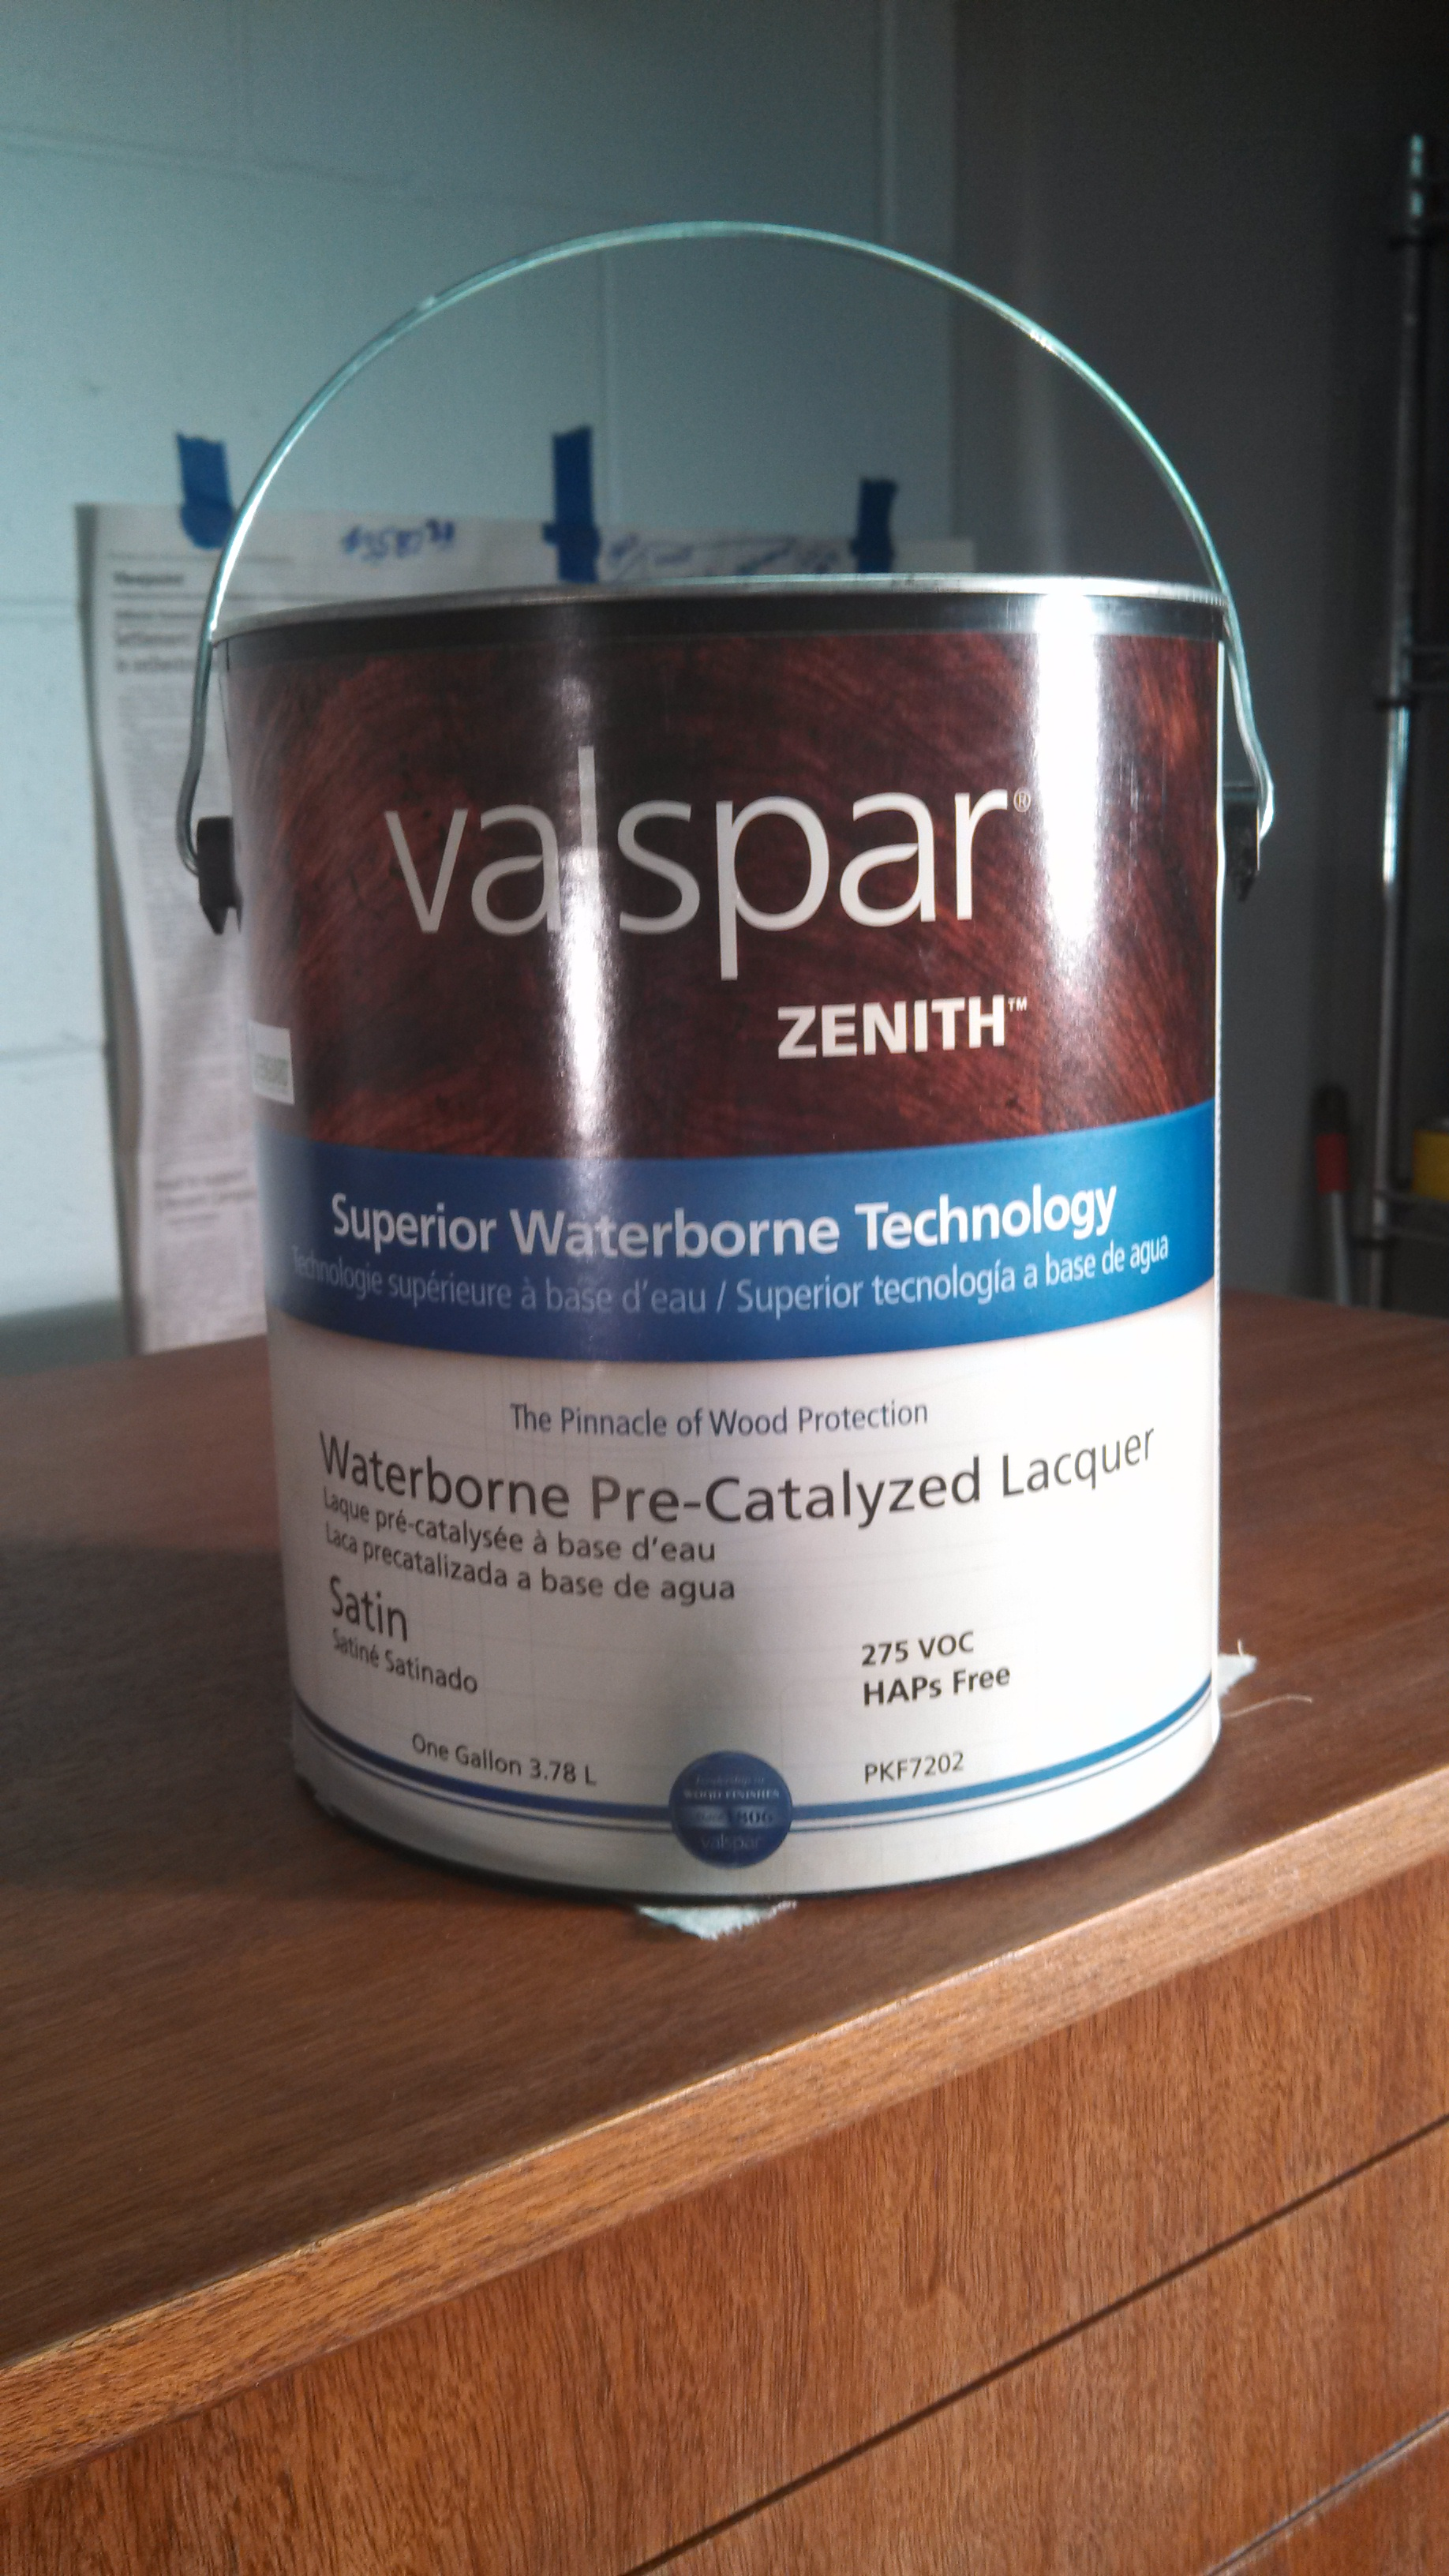 Pic 10 - After staining the piece, lacquer was applied as a top coat. We're trying to transition to environmentally sensitive products in our restoration work and to that end, used Valspar's Zenith Waterborne Lacquer. Zenith is a Greenguard Certified product.